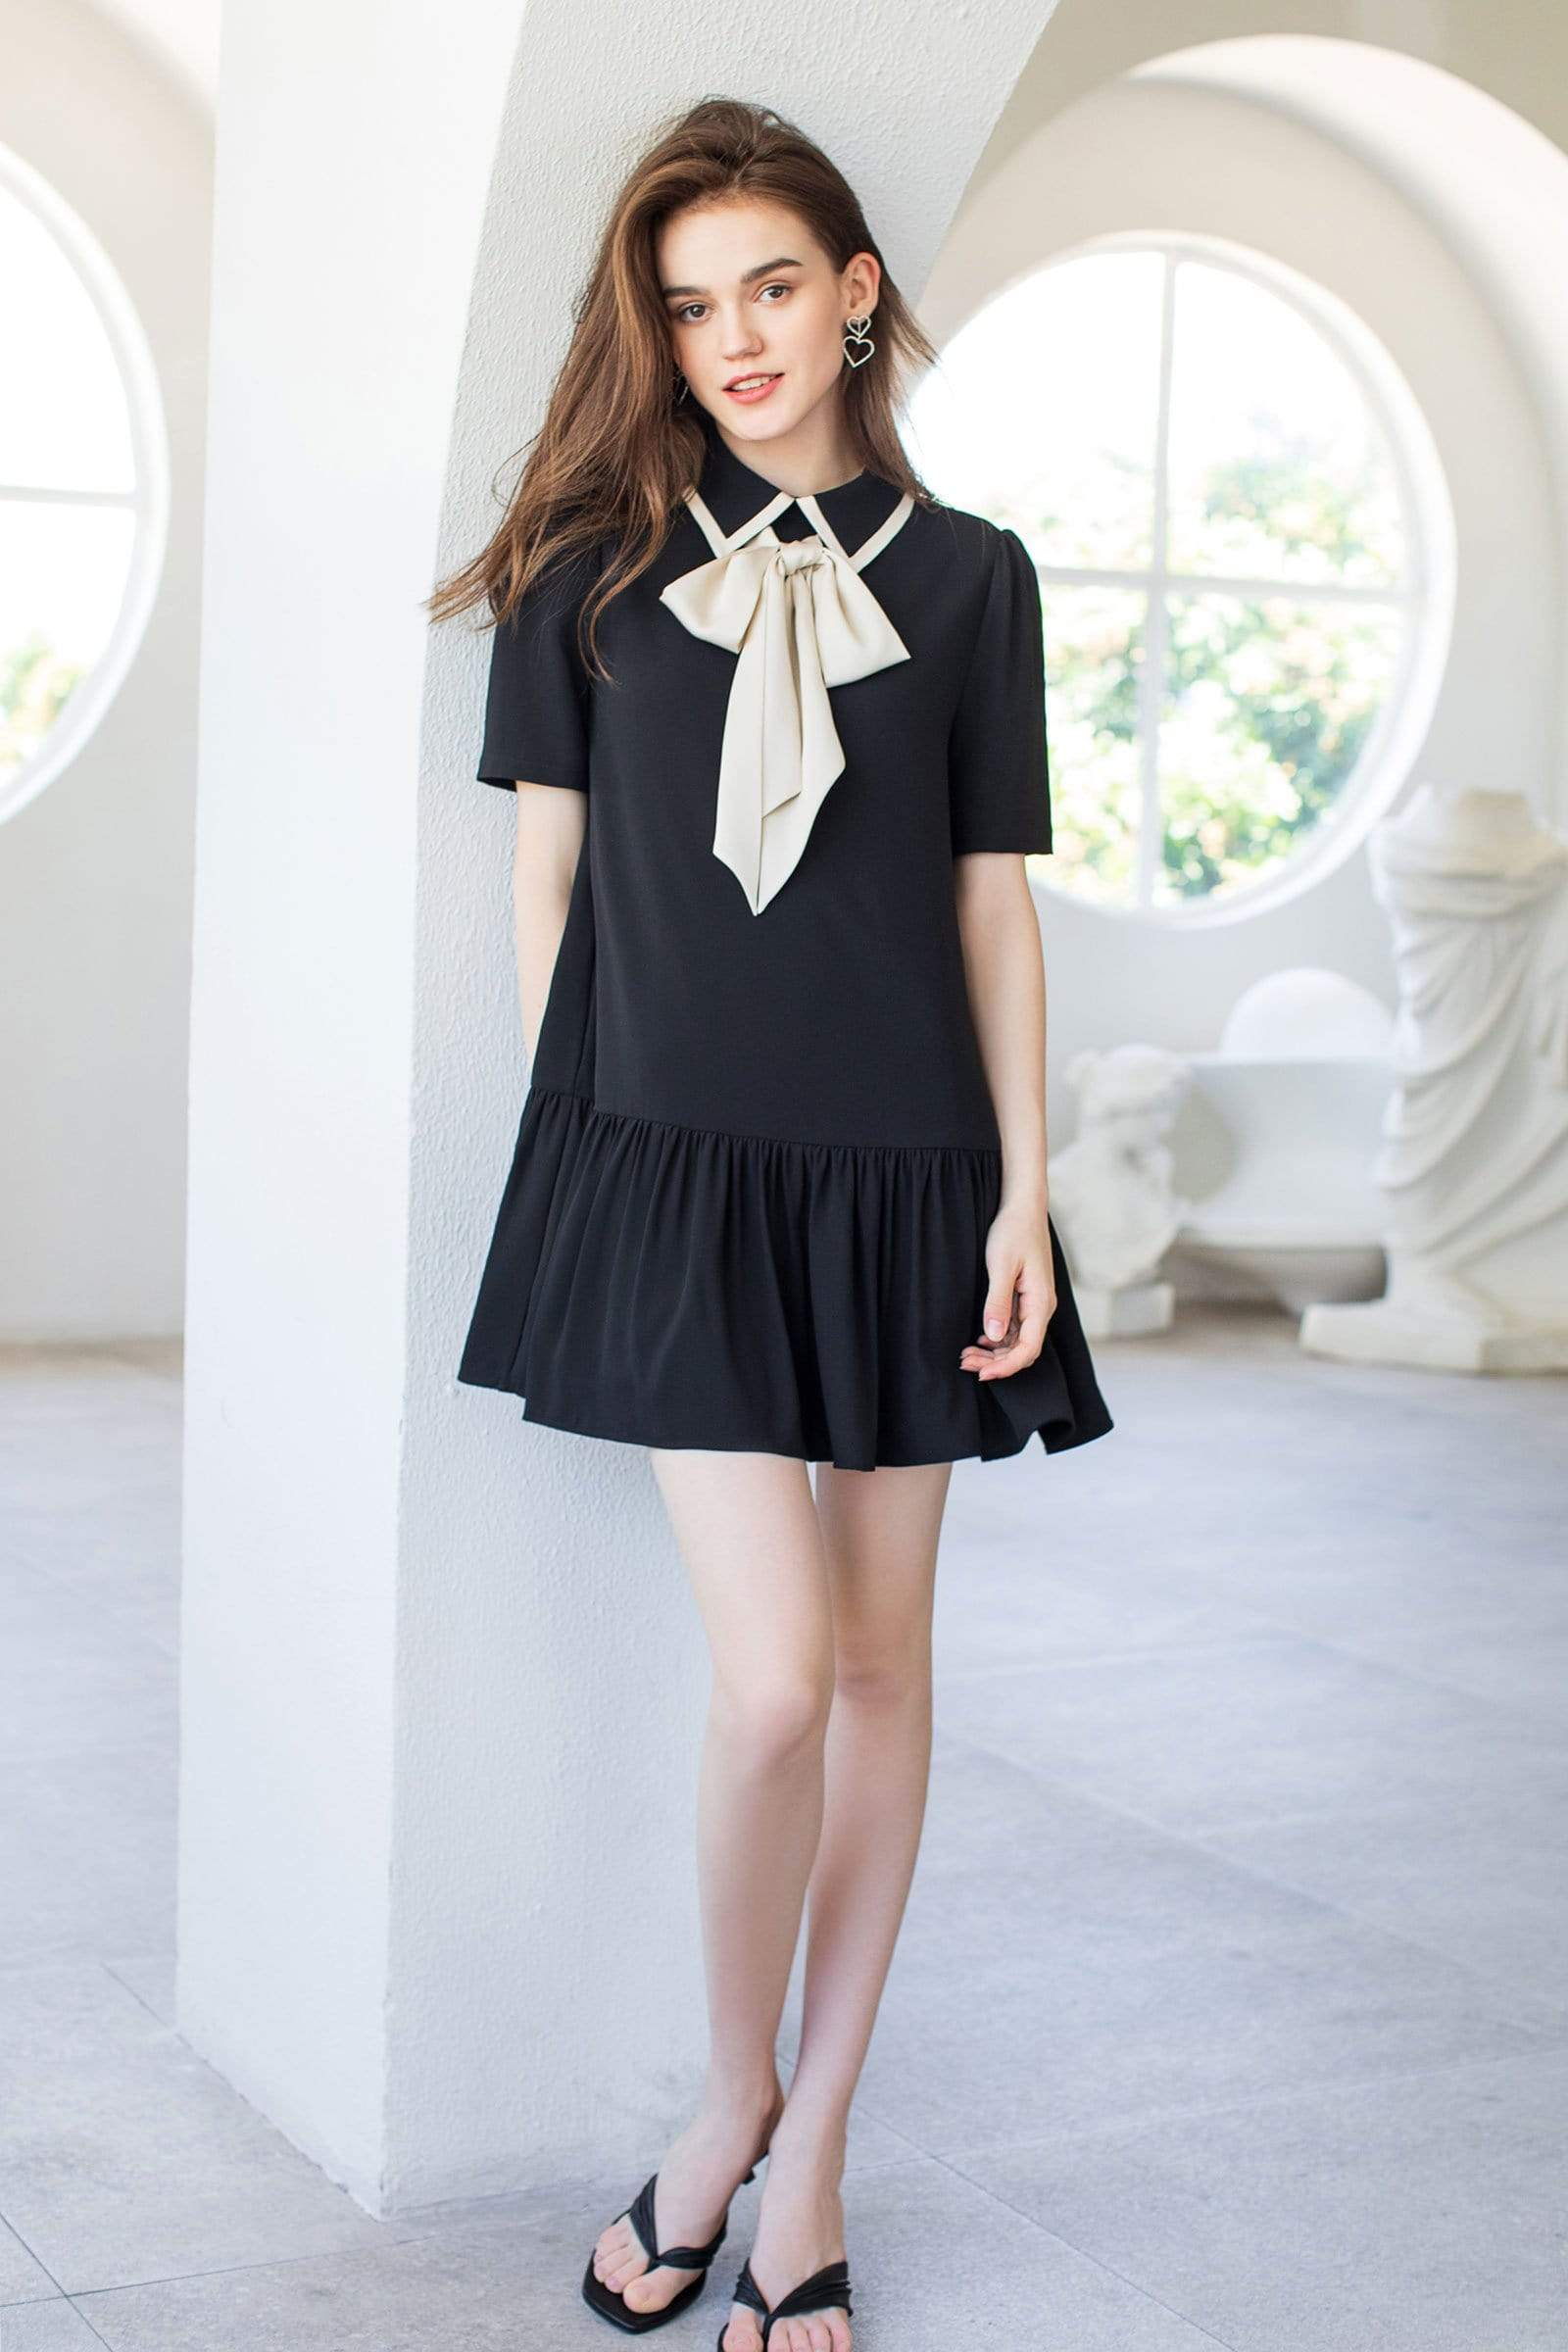 Wednesday Black Bow Dress